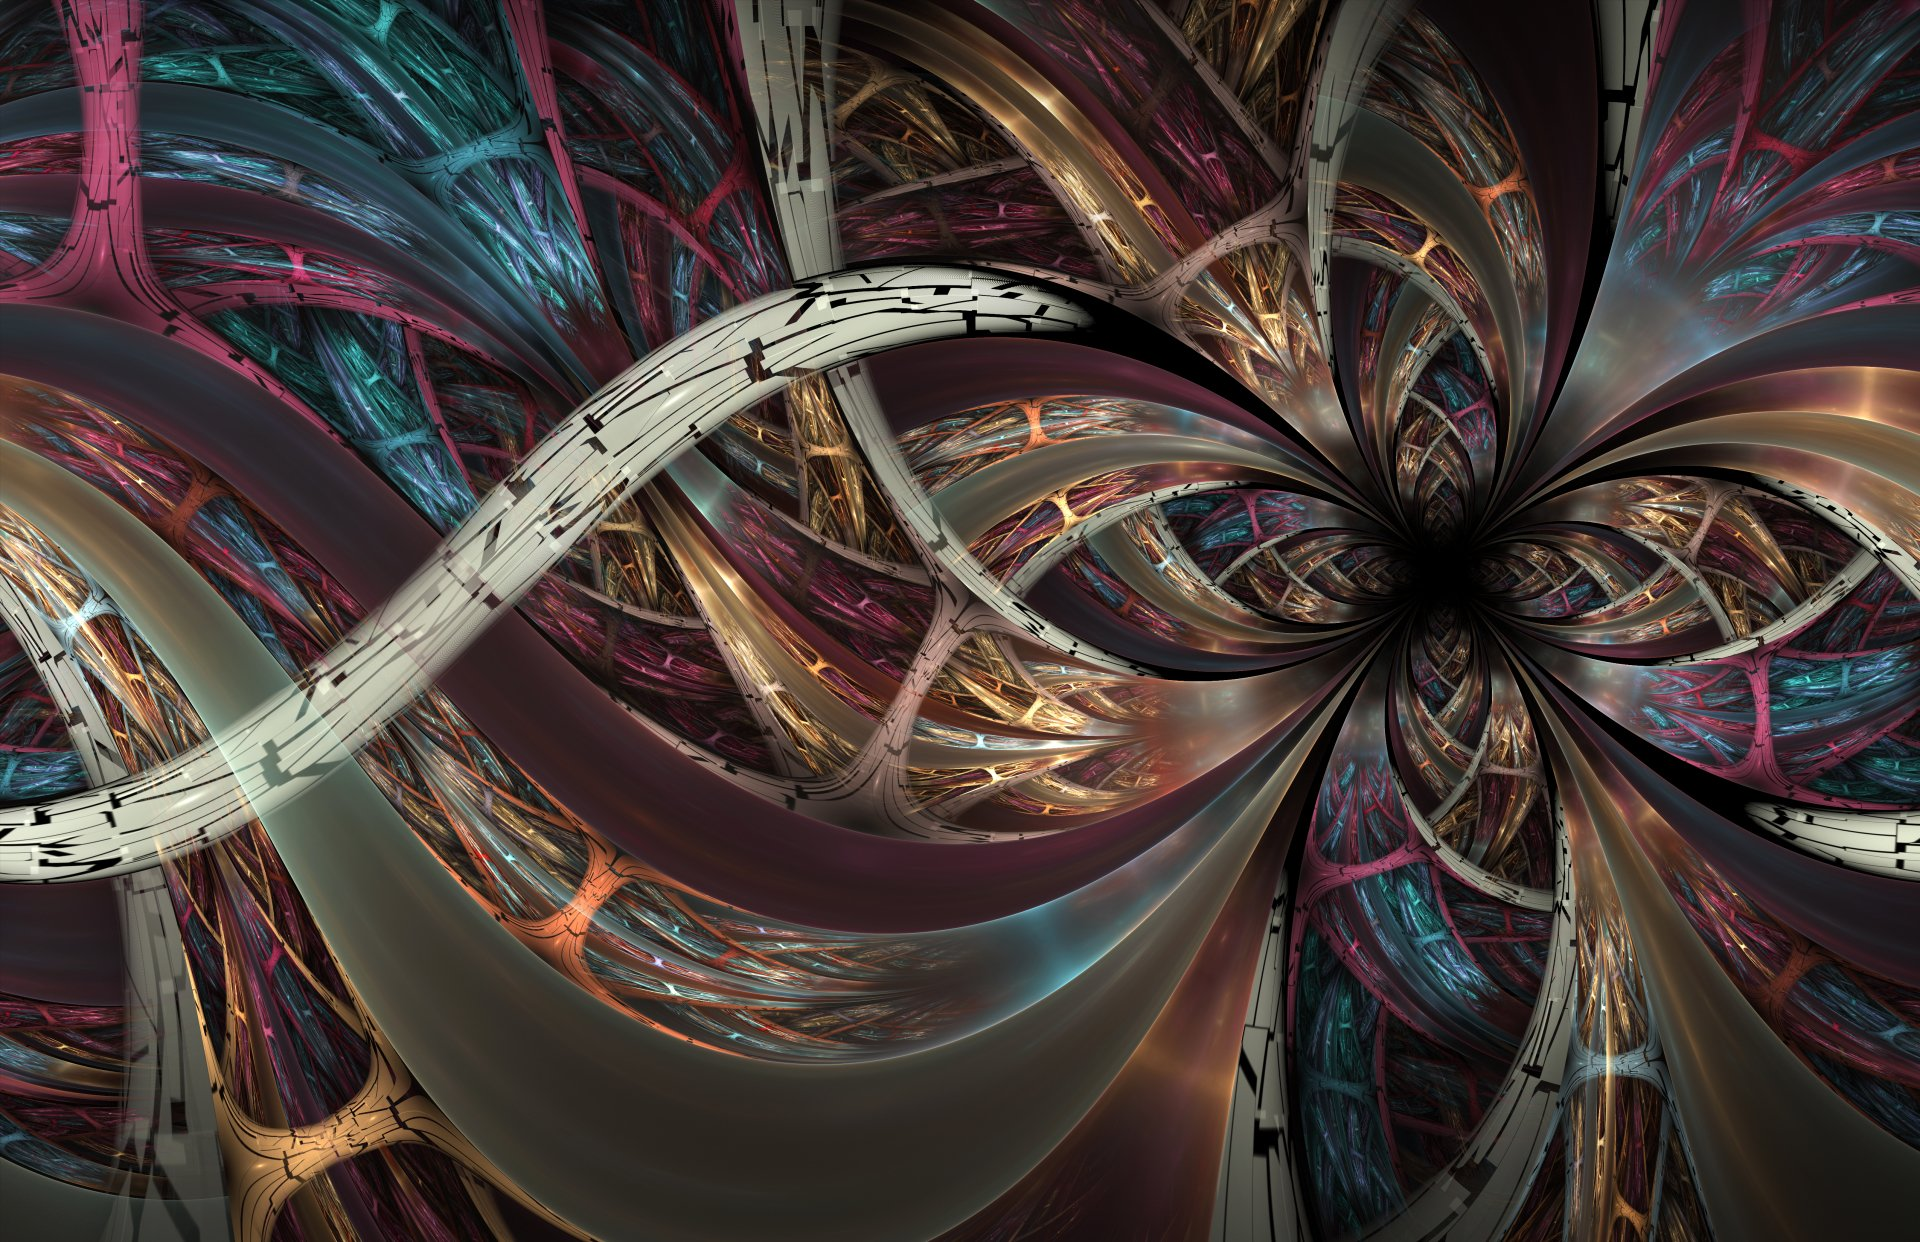 Abstract - Fractal  Abstract Swirl Digital Art Artistic Wallpaper